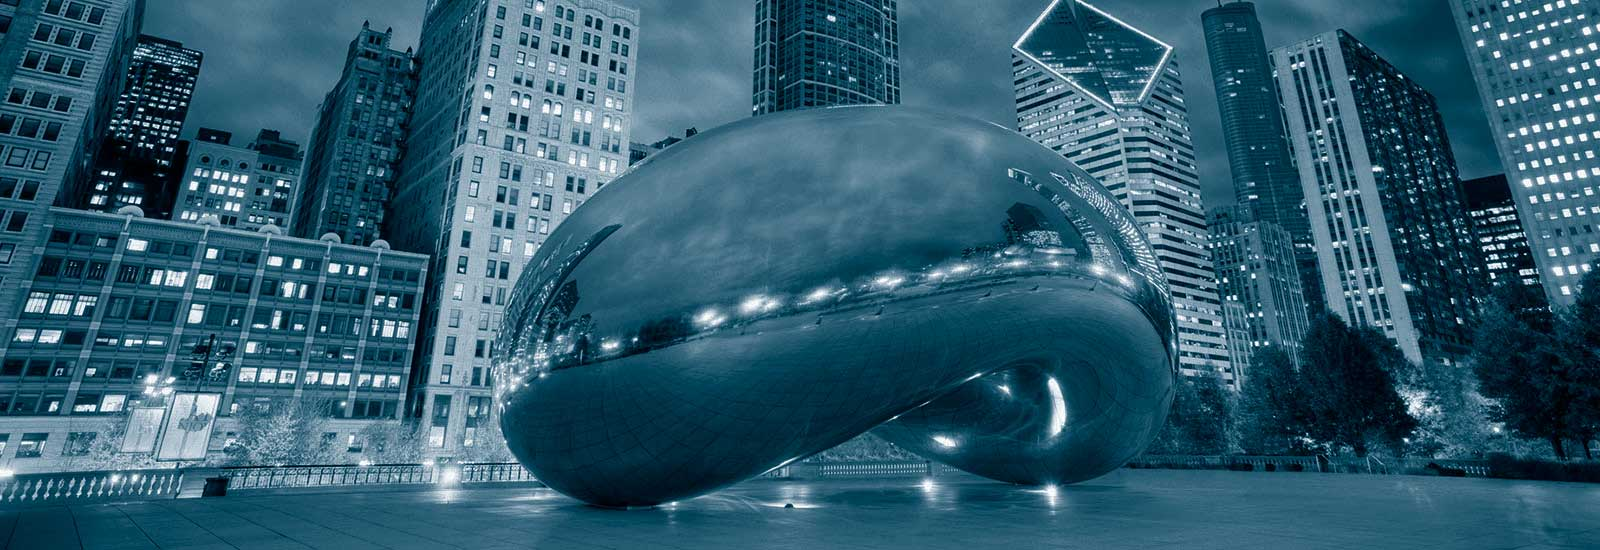 cloud-gate-chicago-illinois-usa-1